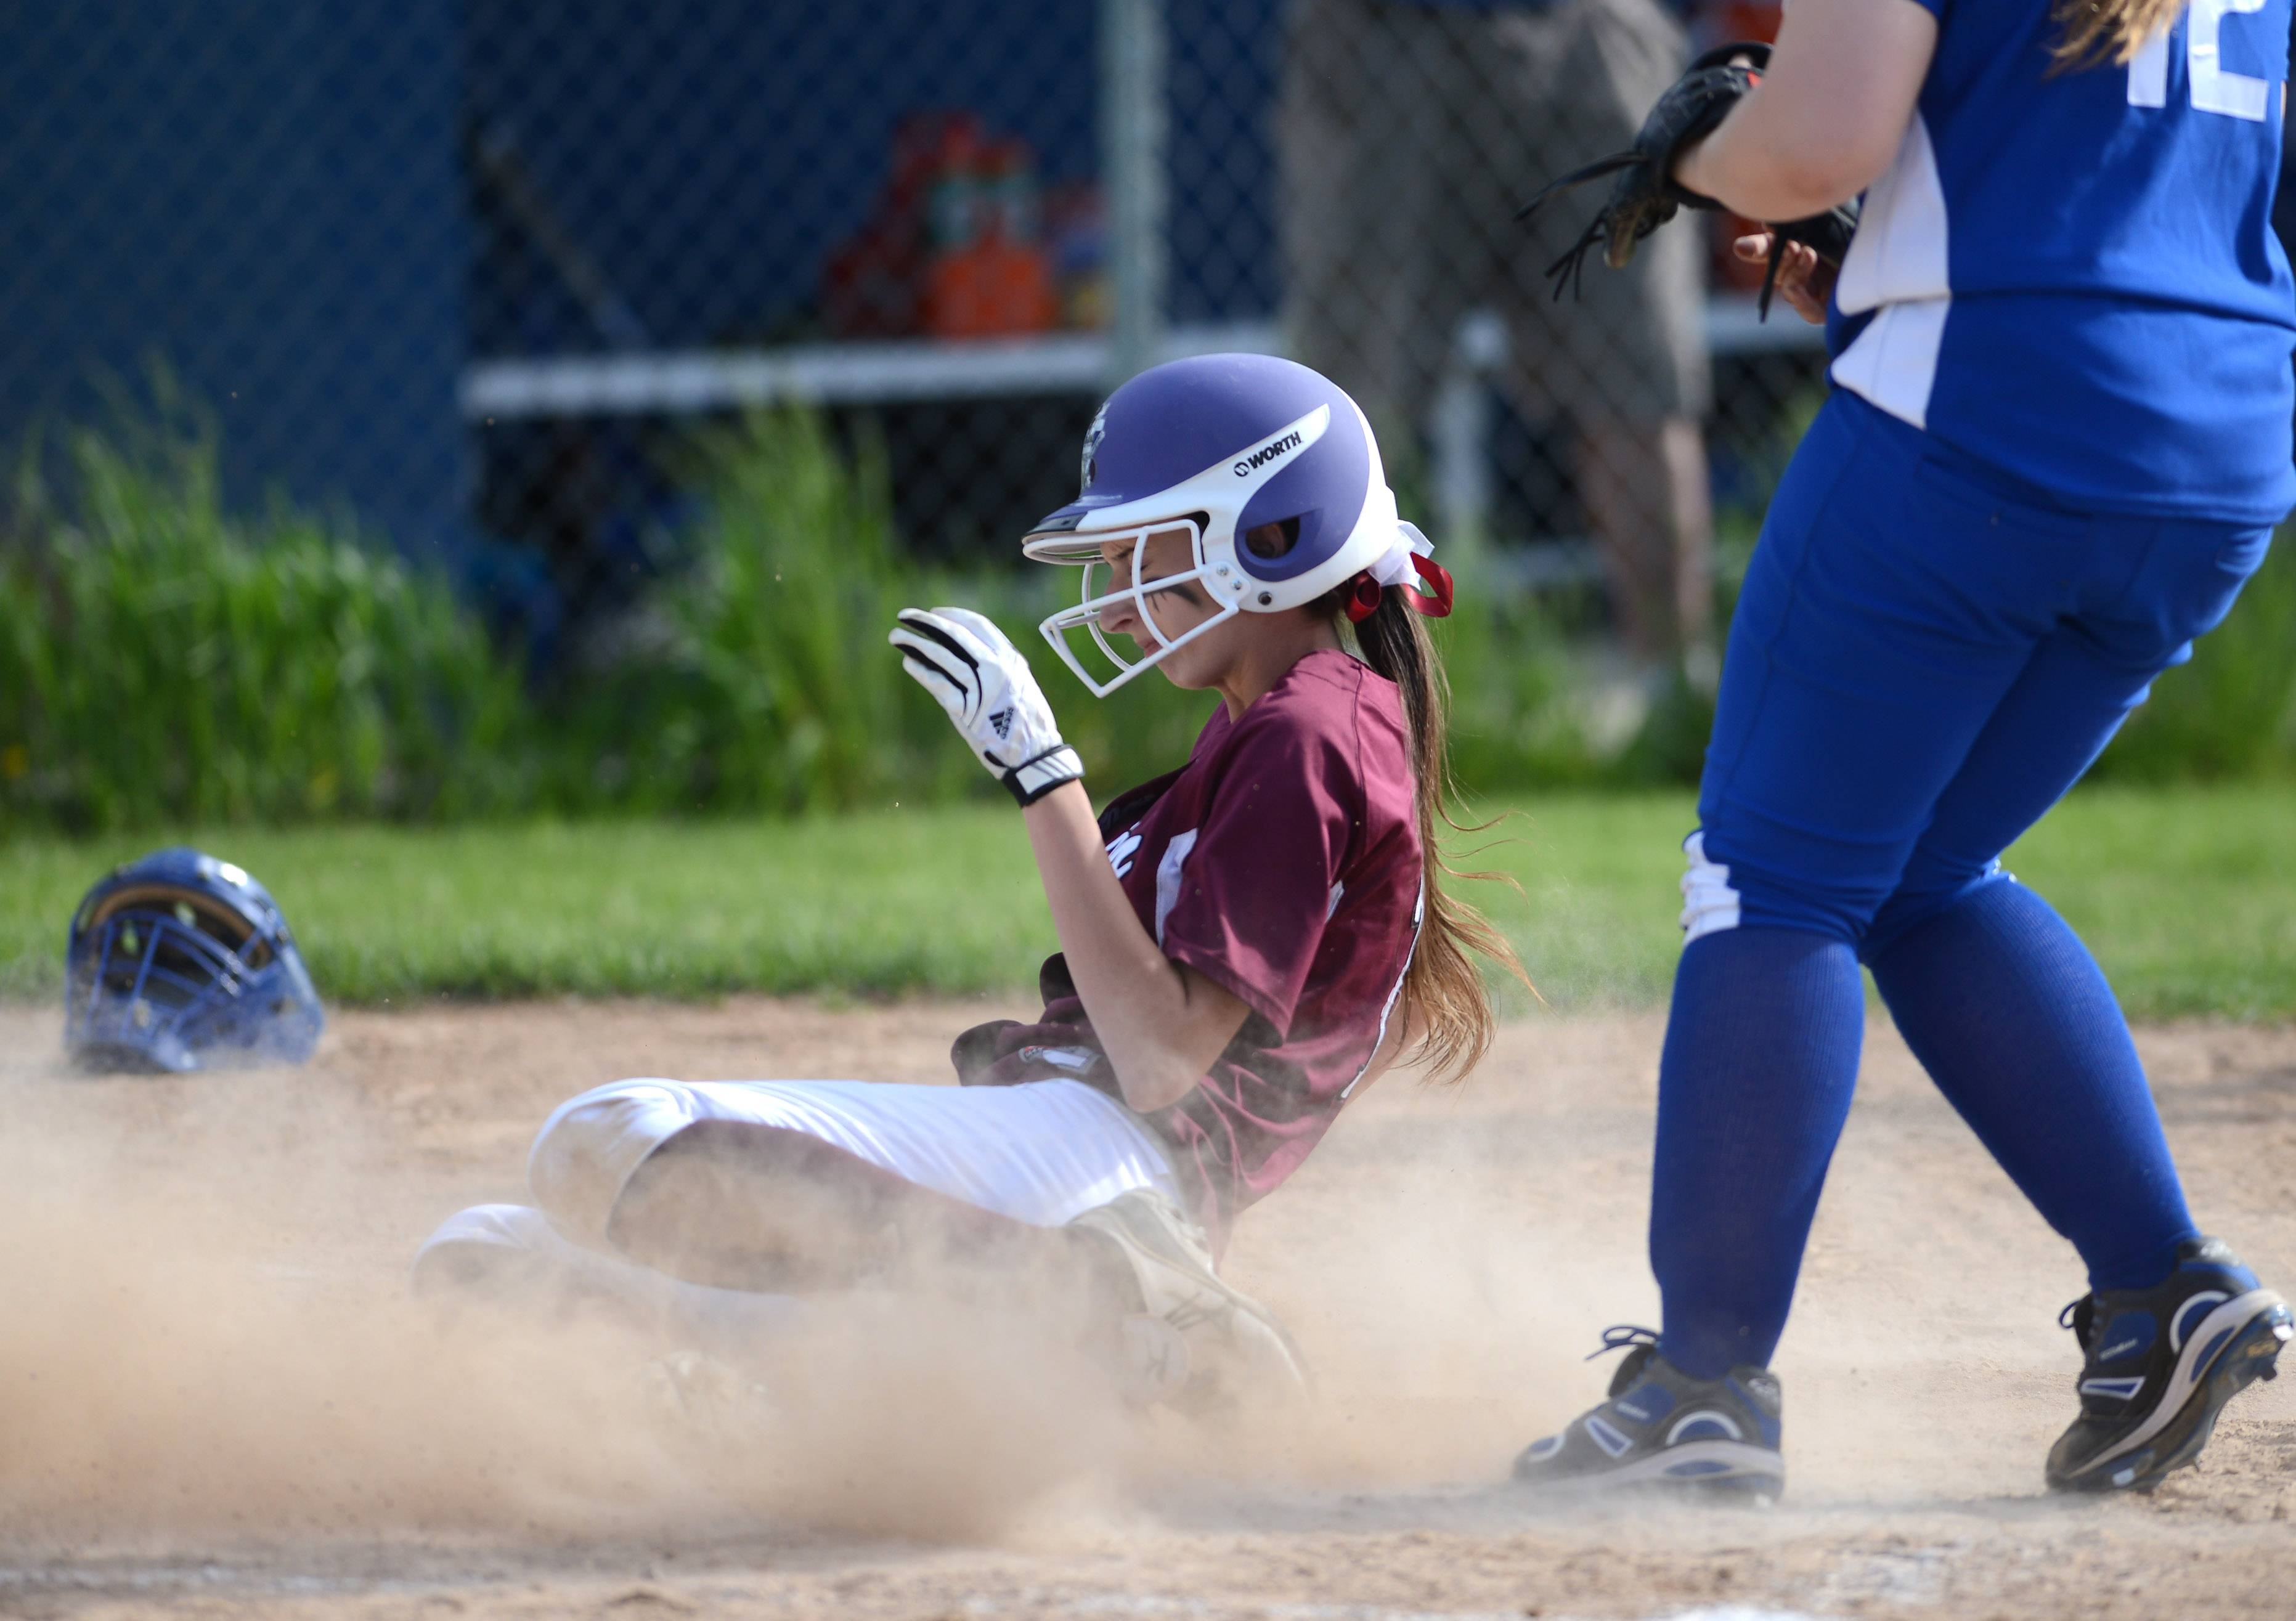 Elgin's Jenna Lombardo slides safely into home on a wild pitch during Thursday's game at Larkin.